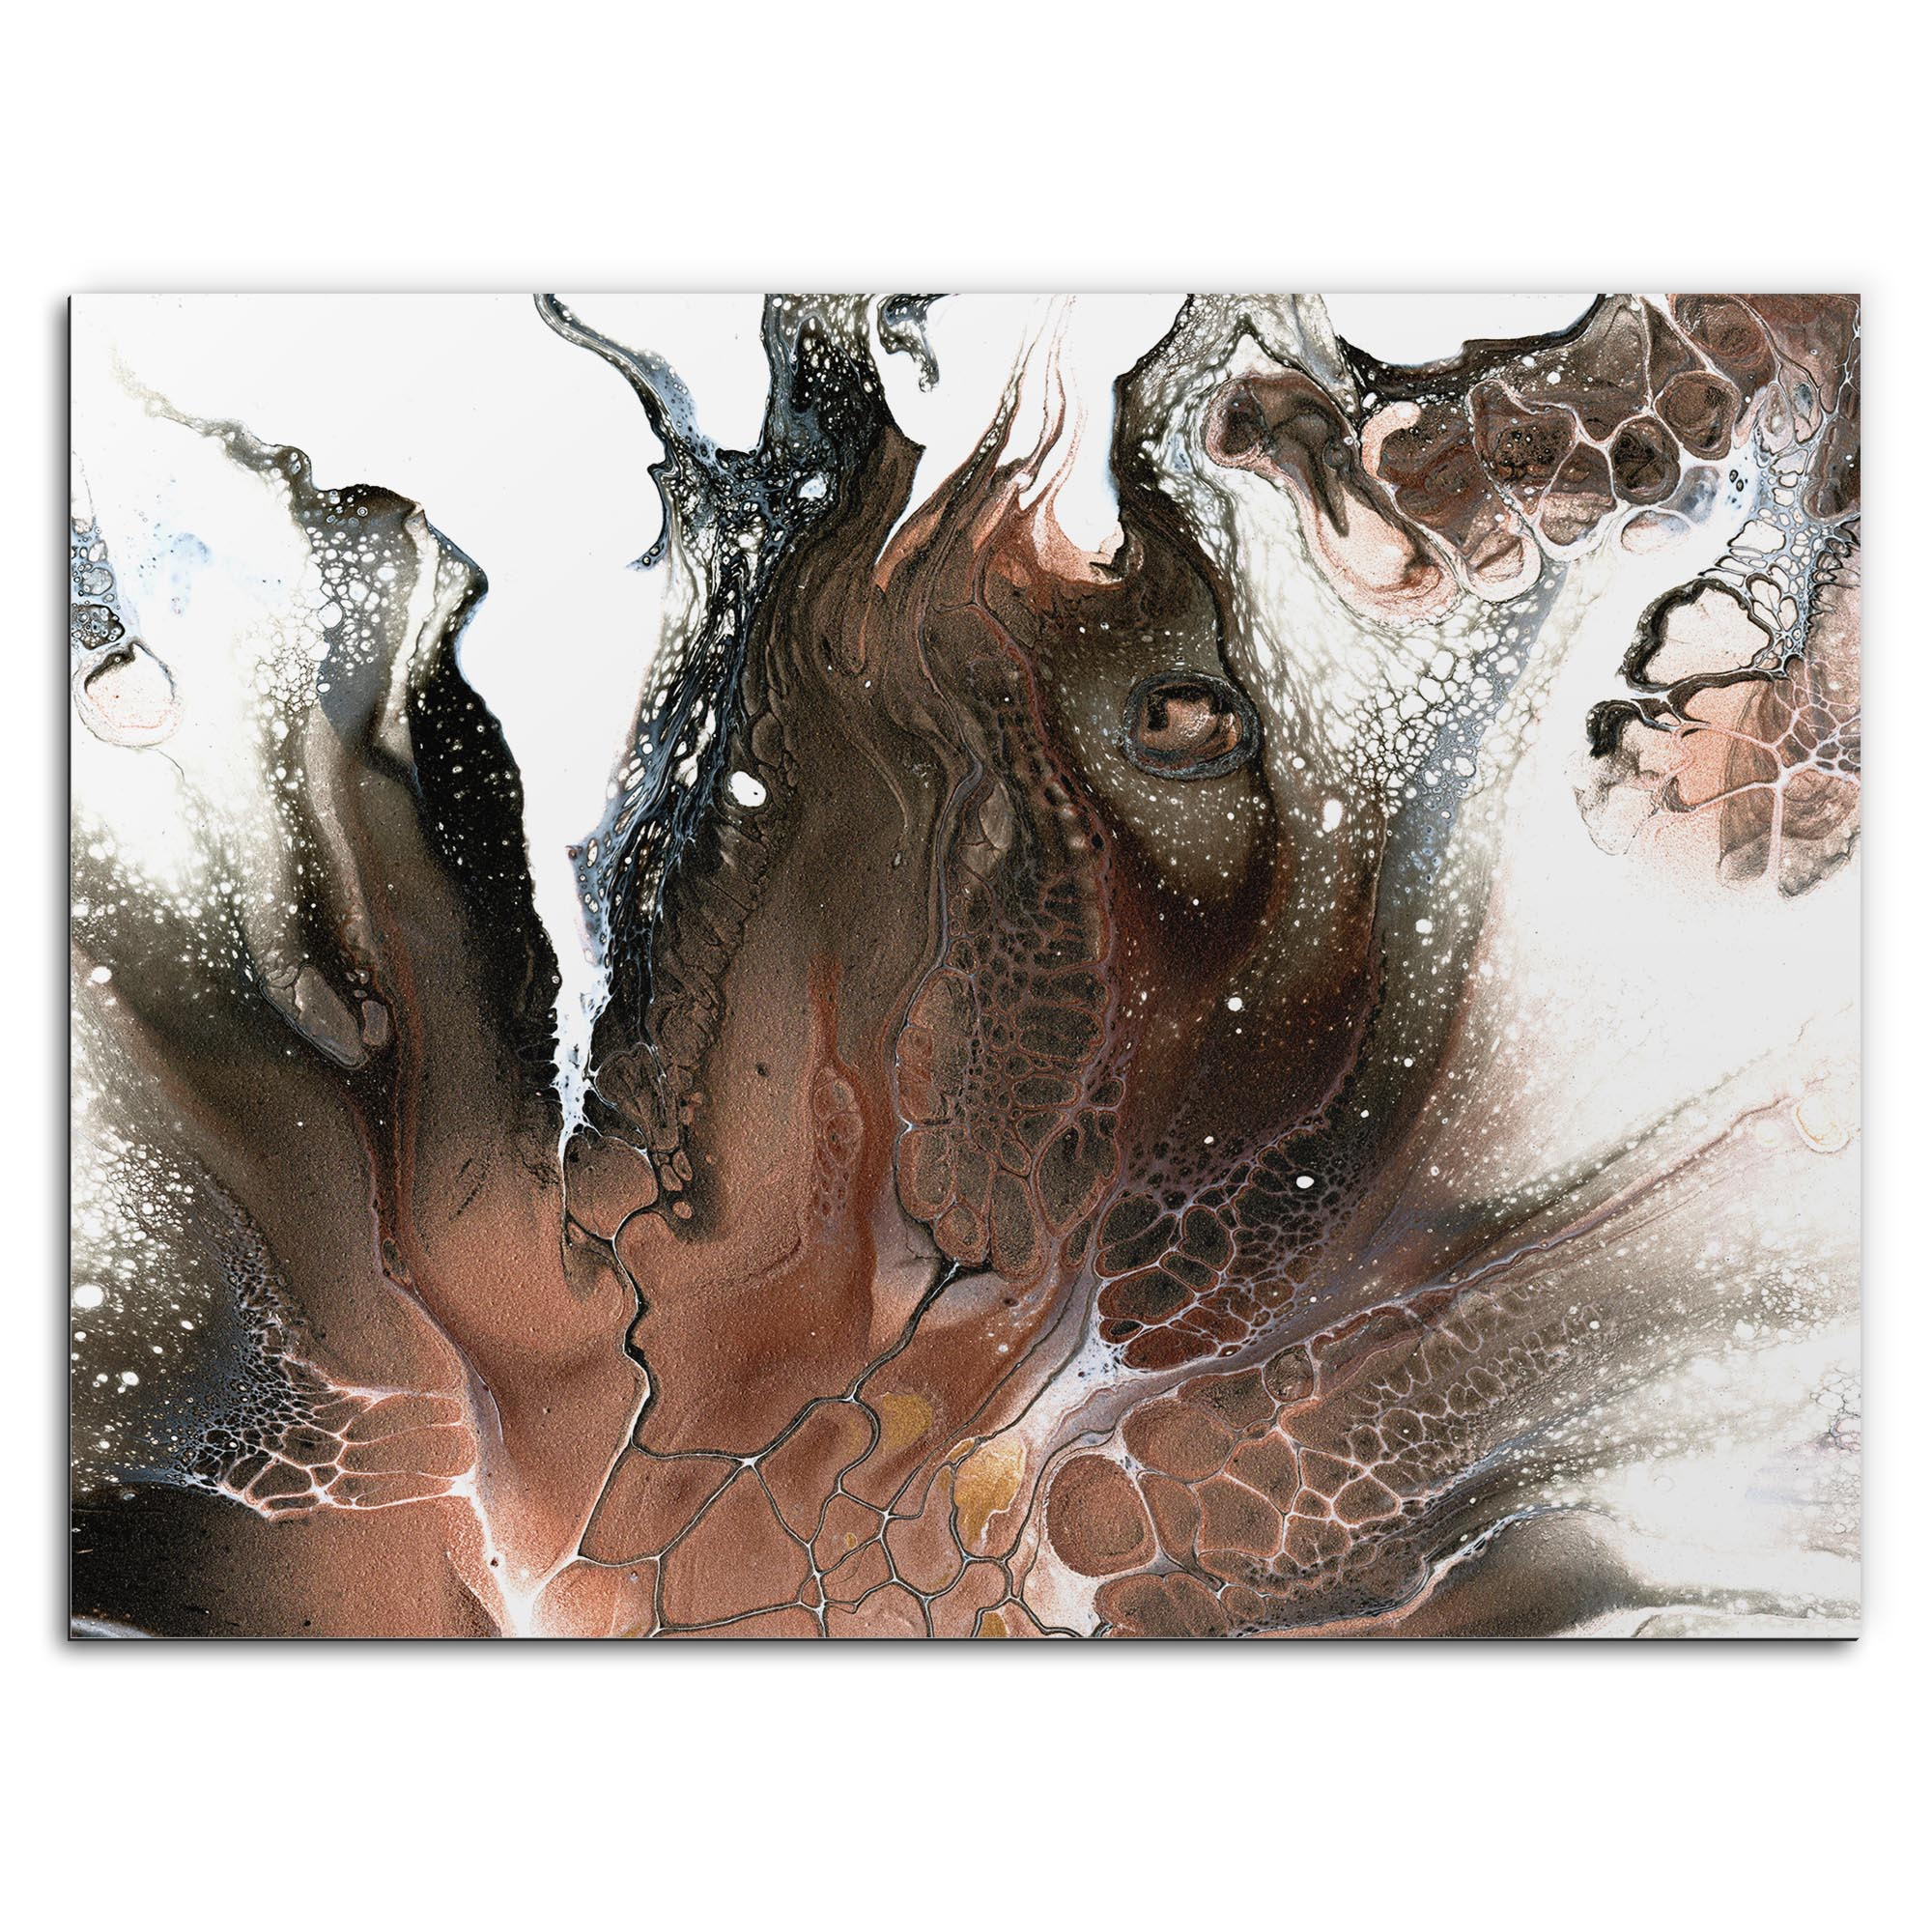 Elana Reiter 'Ashen' 32in x 24in Contemporary Style Abstract Wall Art